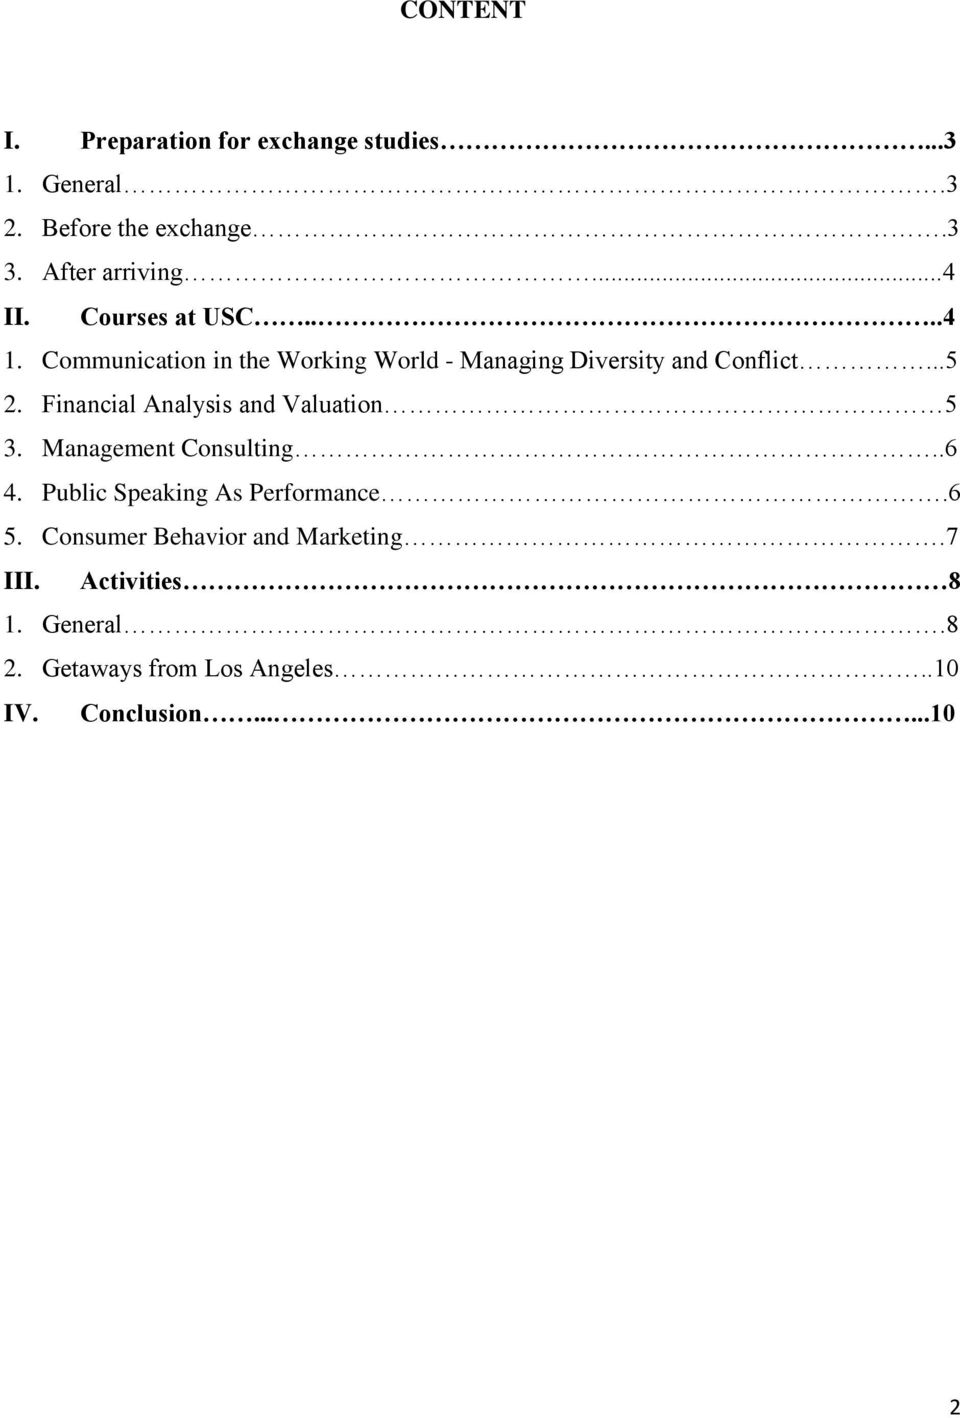 Financial Analysis and Valuation 5 3. Management Consulting..6 4. Public Speaking As Performance.6 5.